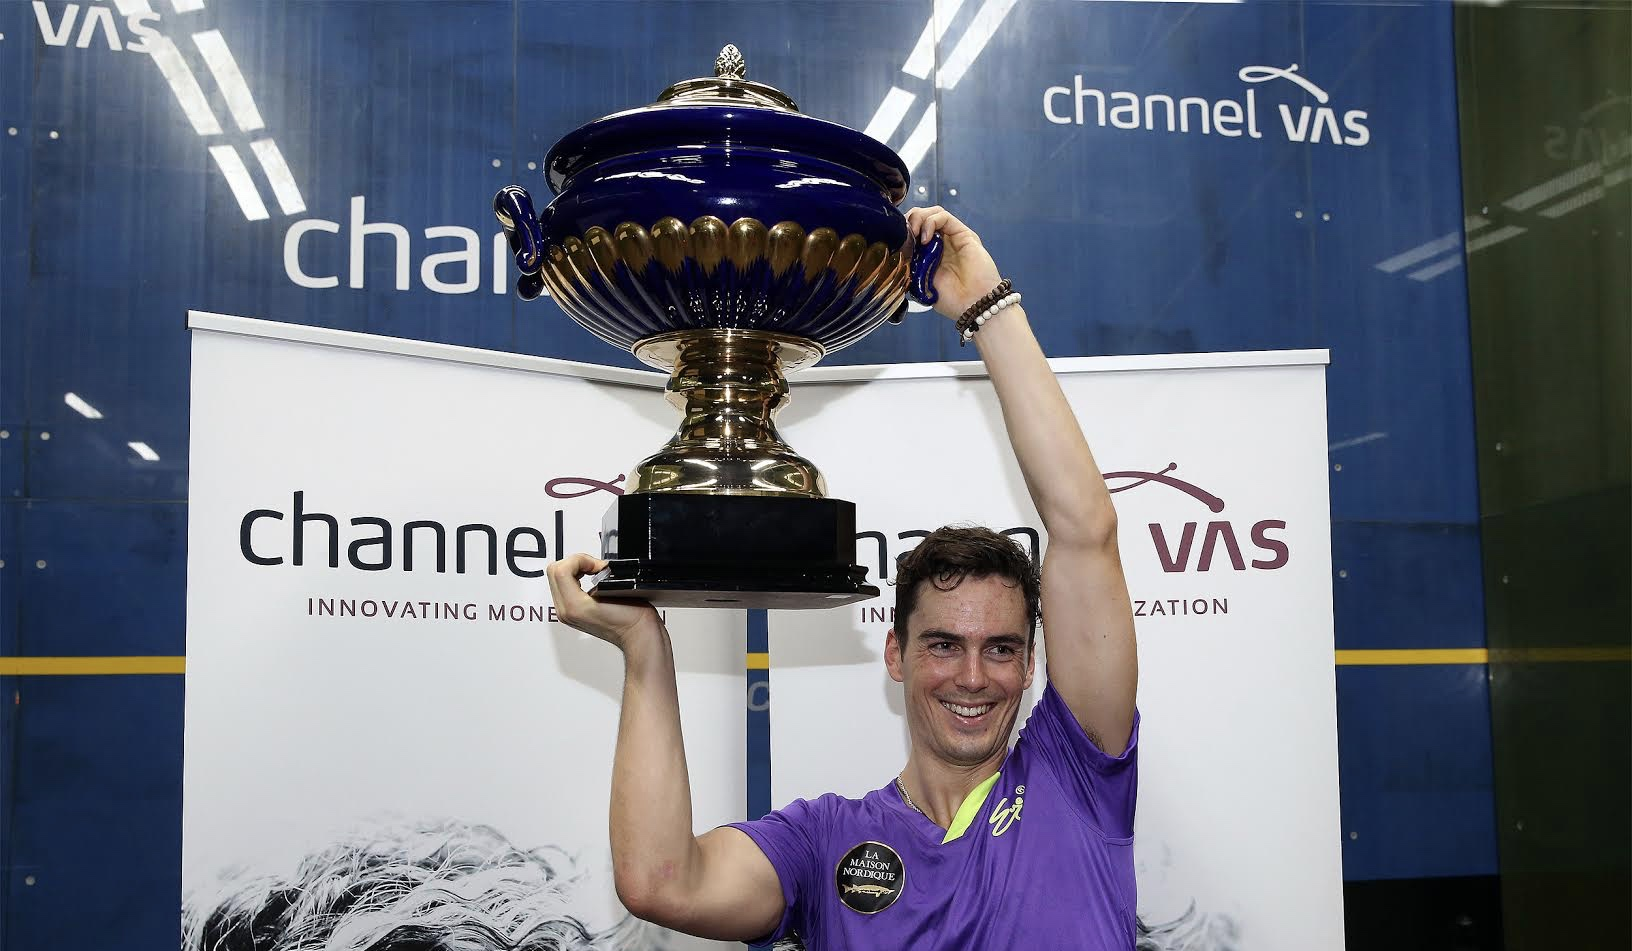 Paul Coll is the Channel VAS champion